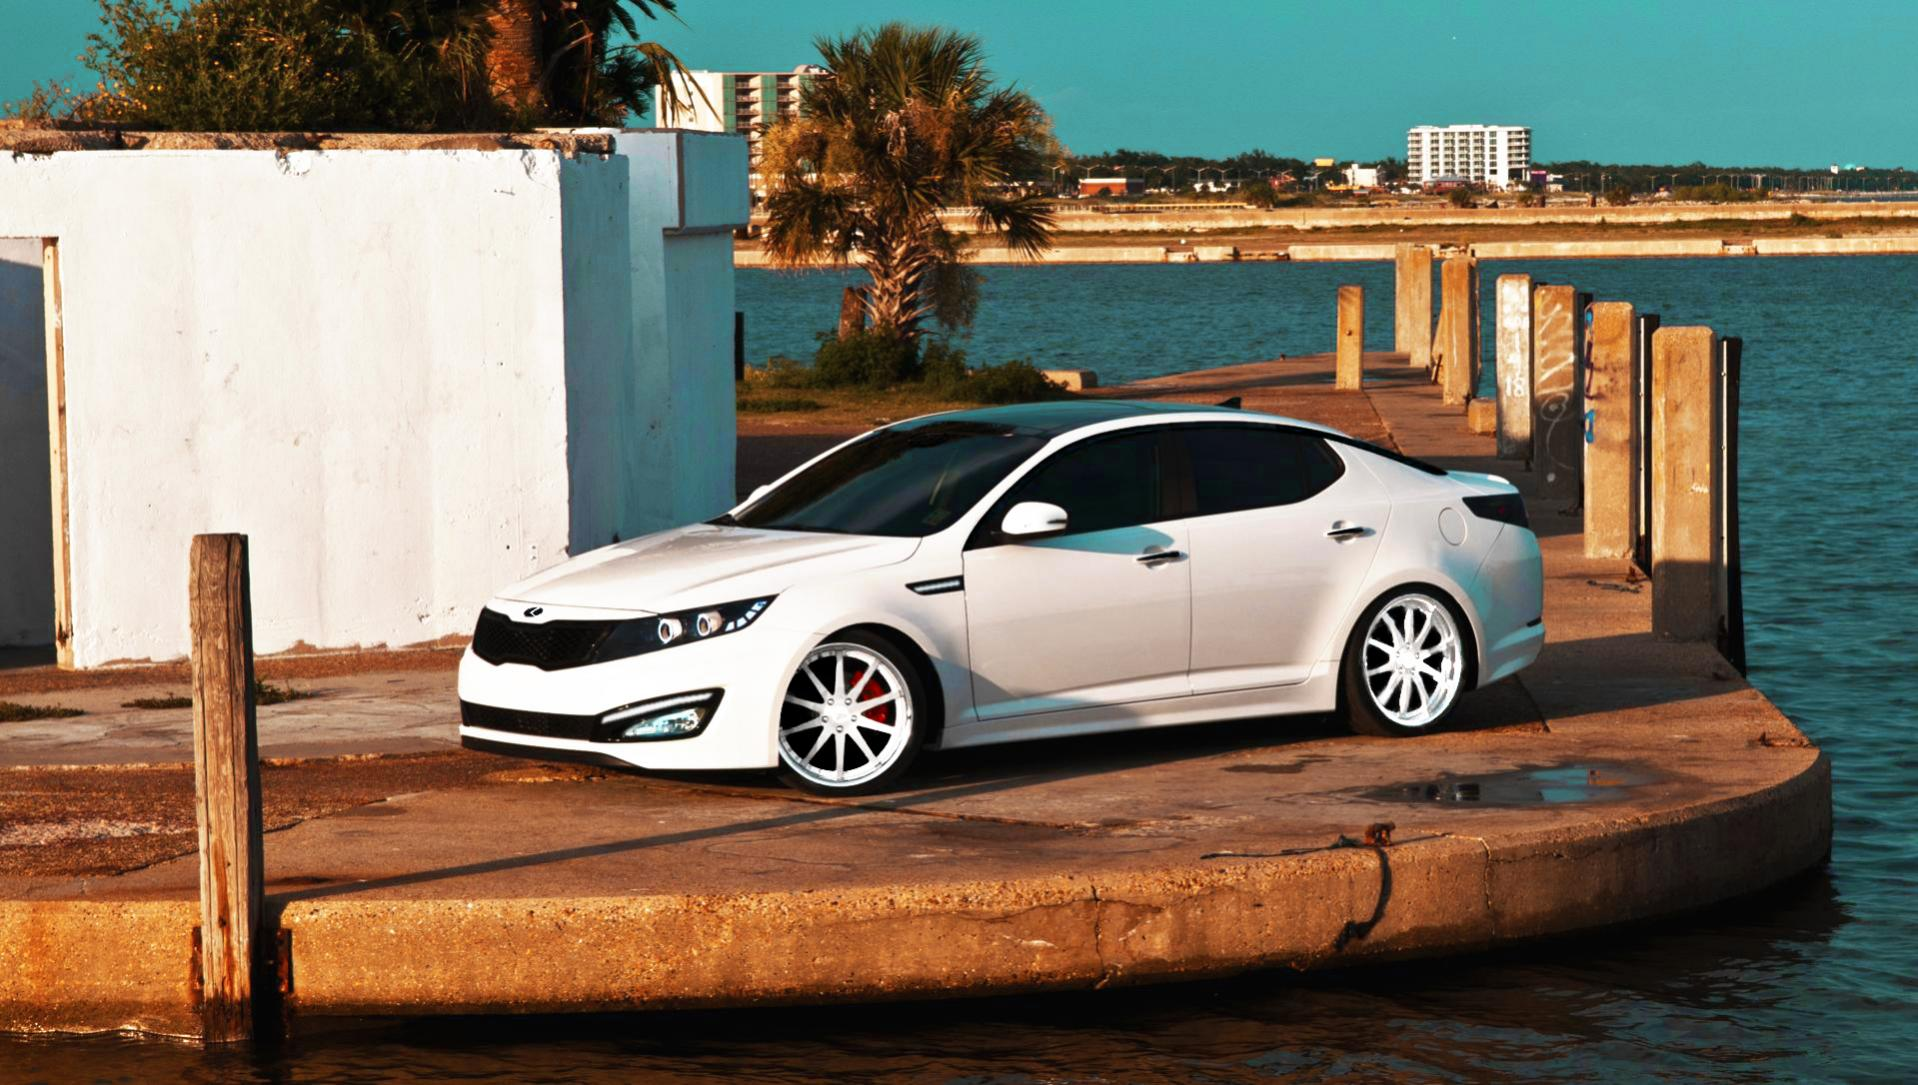 http://www.optimaforums.com/forum/attachments/new-member-introductions/9875d1343633923-new-dream-car-am-saving-one-now-optima-sx-edit-3.jpg